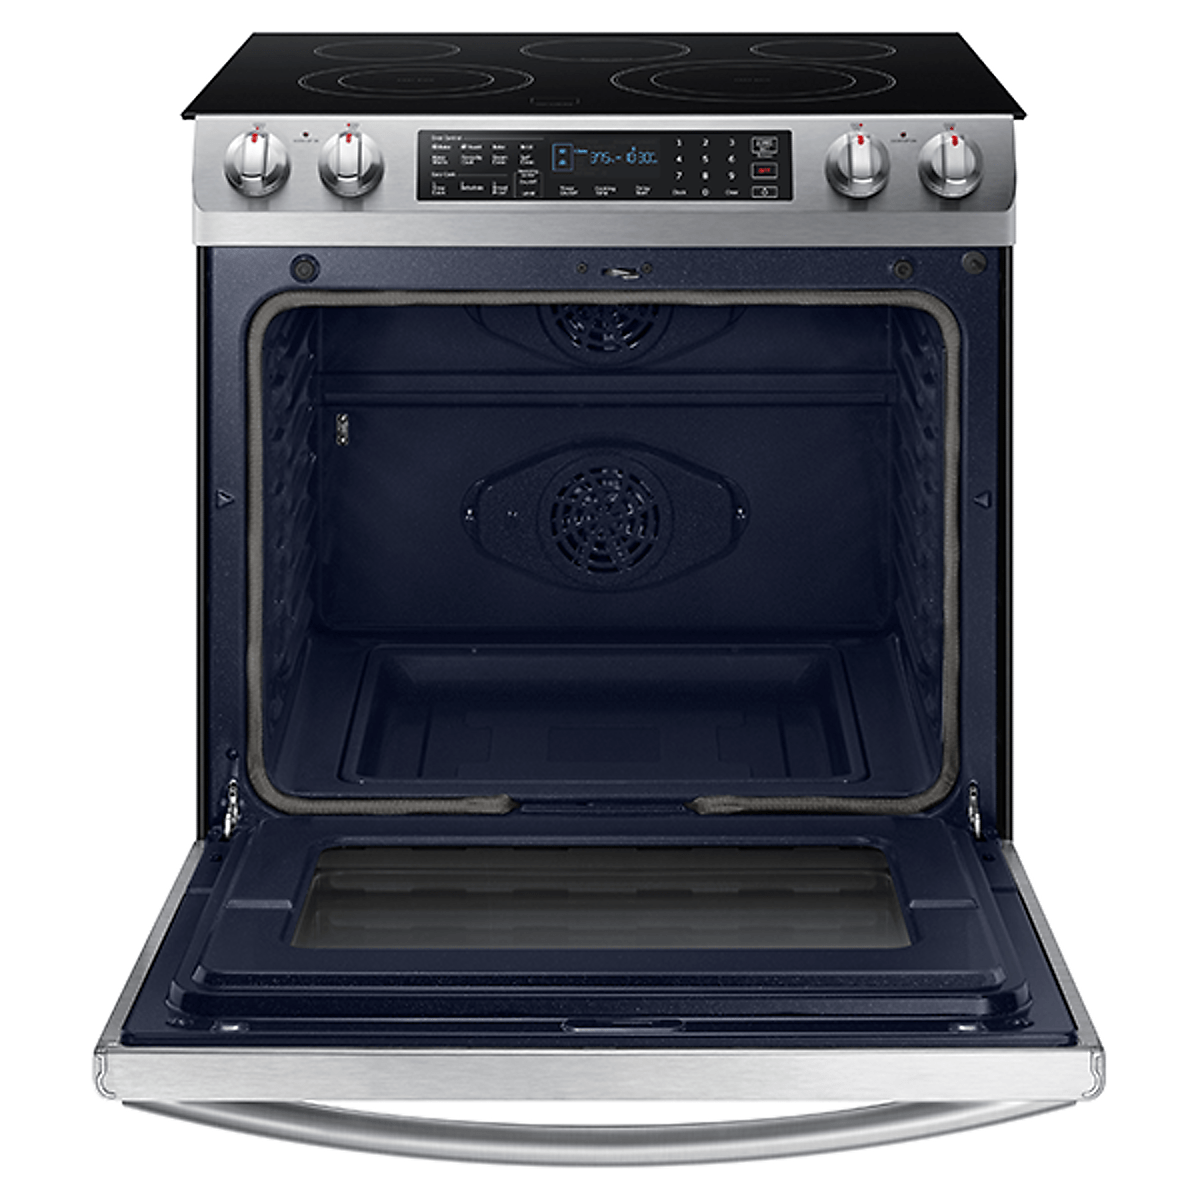 NE58K9430SS Samsung 30 Slide In Electric Range